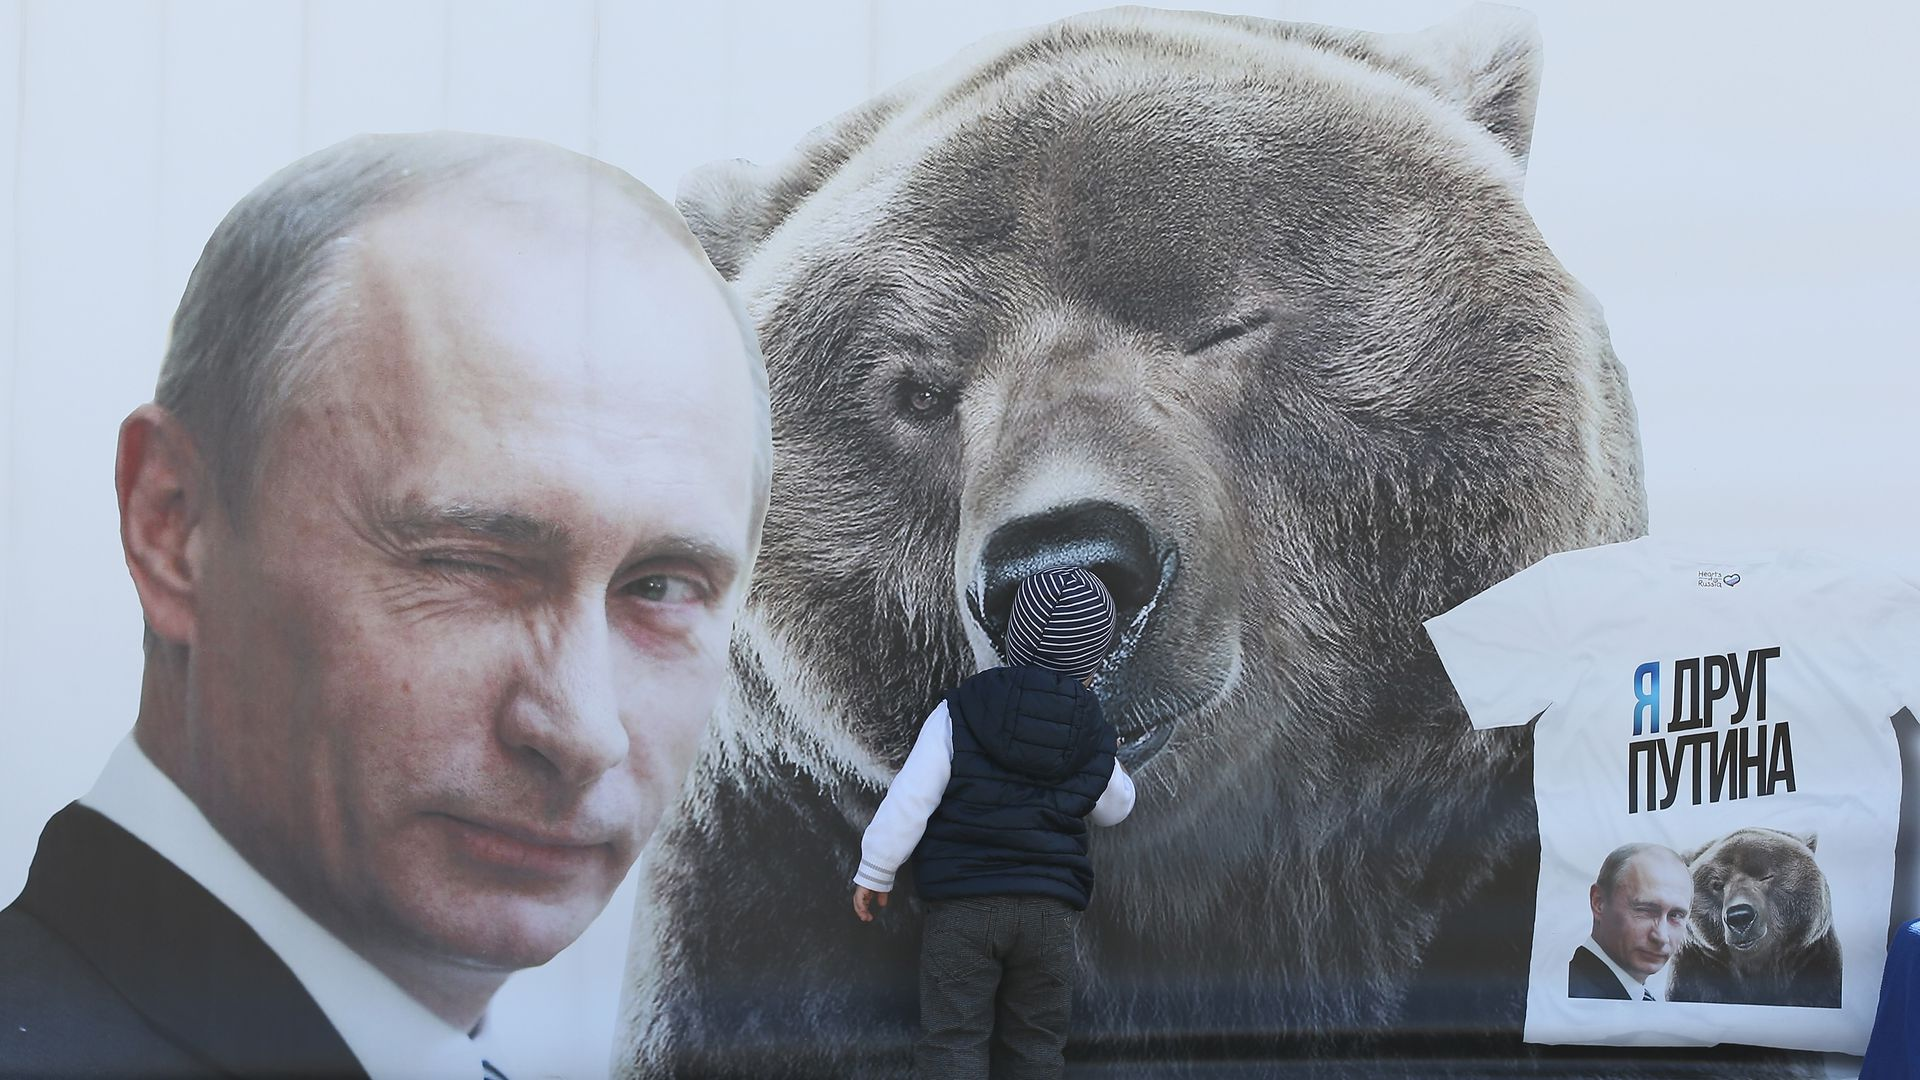 Billboard of winking Vladimir Putin next to a winking bear. They are winking different eyes.